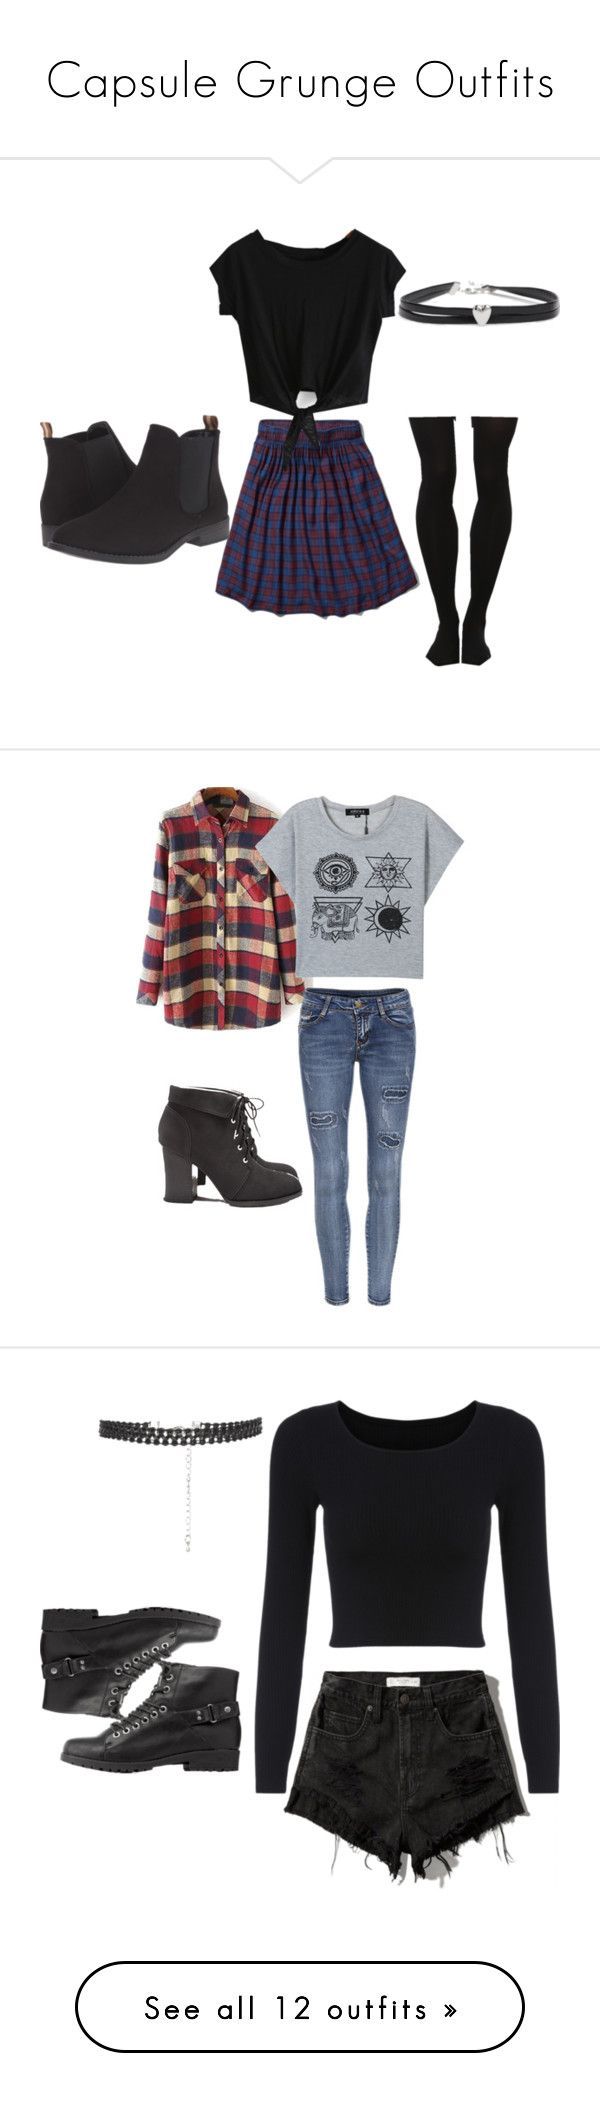 """Capsule Grunge Outfits"" by arabella-space ❤ liked on Polyvore featuring Abercrombie & Fitch, Patrizia, ASOS, women's clothing, women, female, woman, misses, juniors and Forever 21"